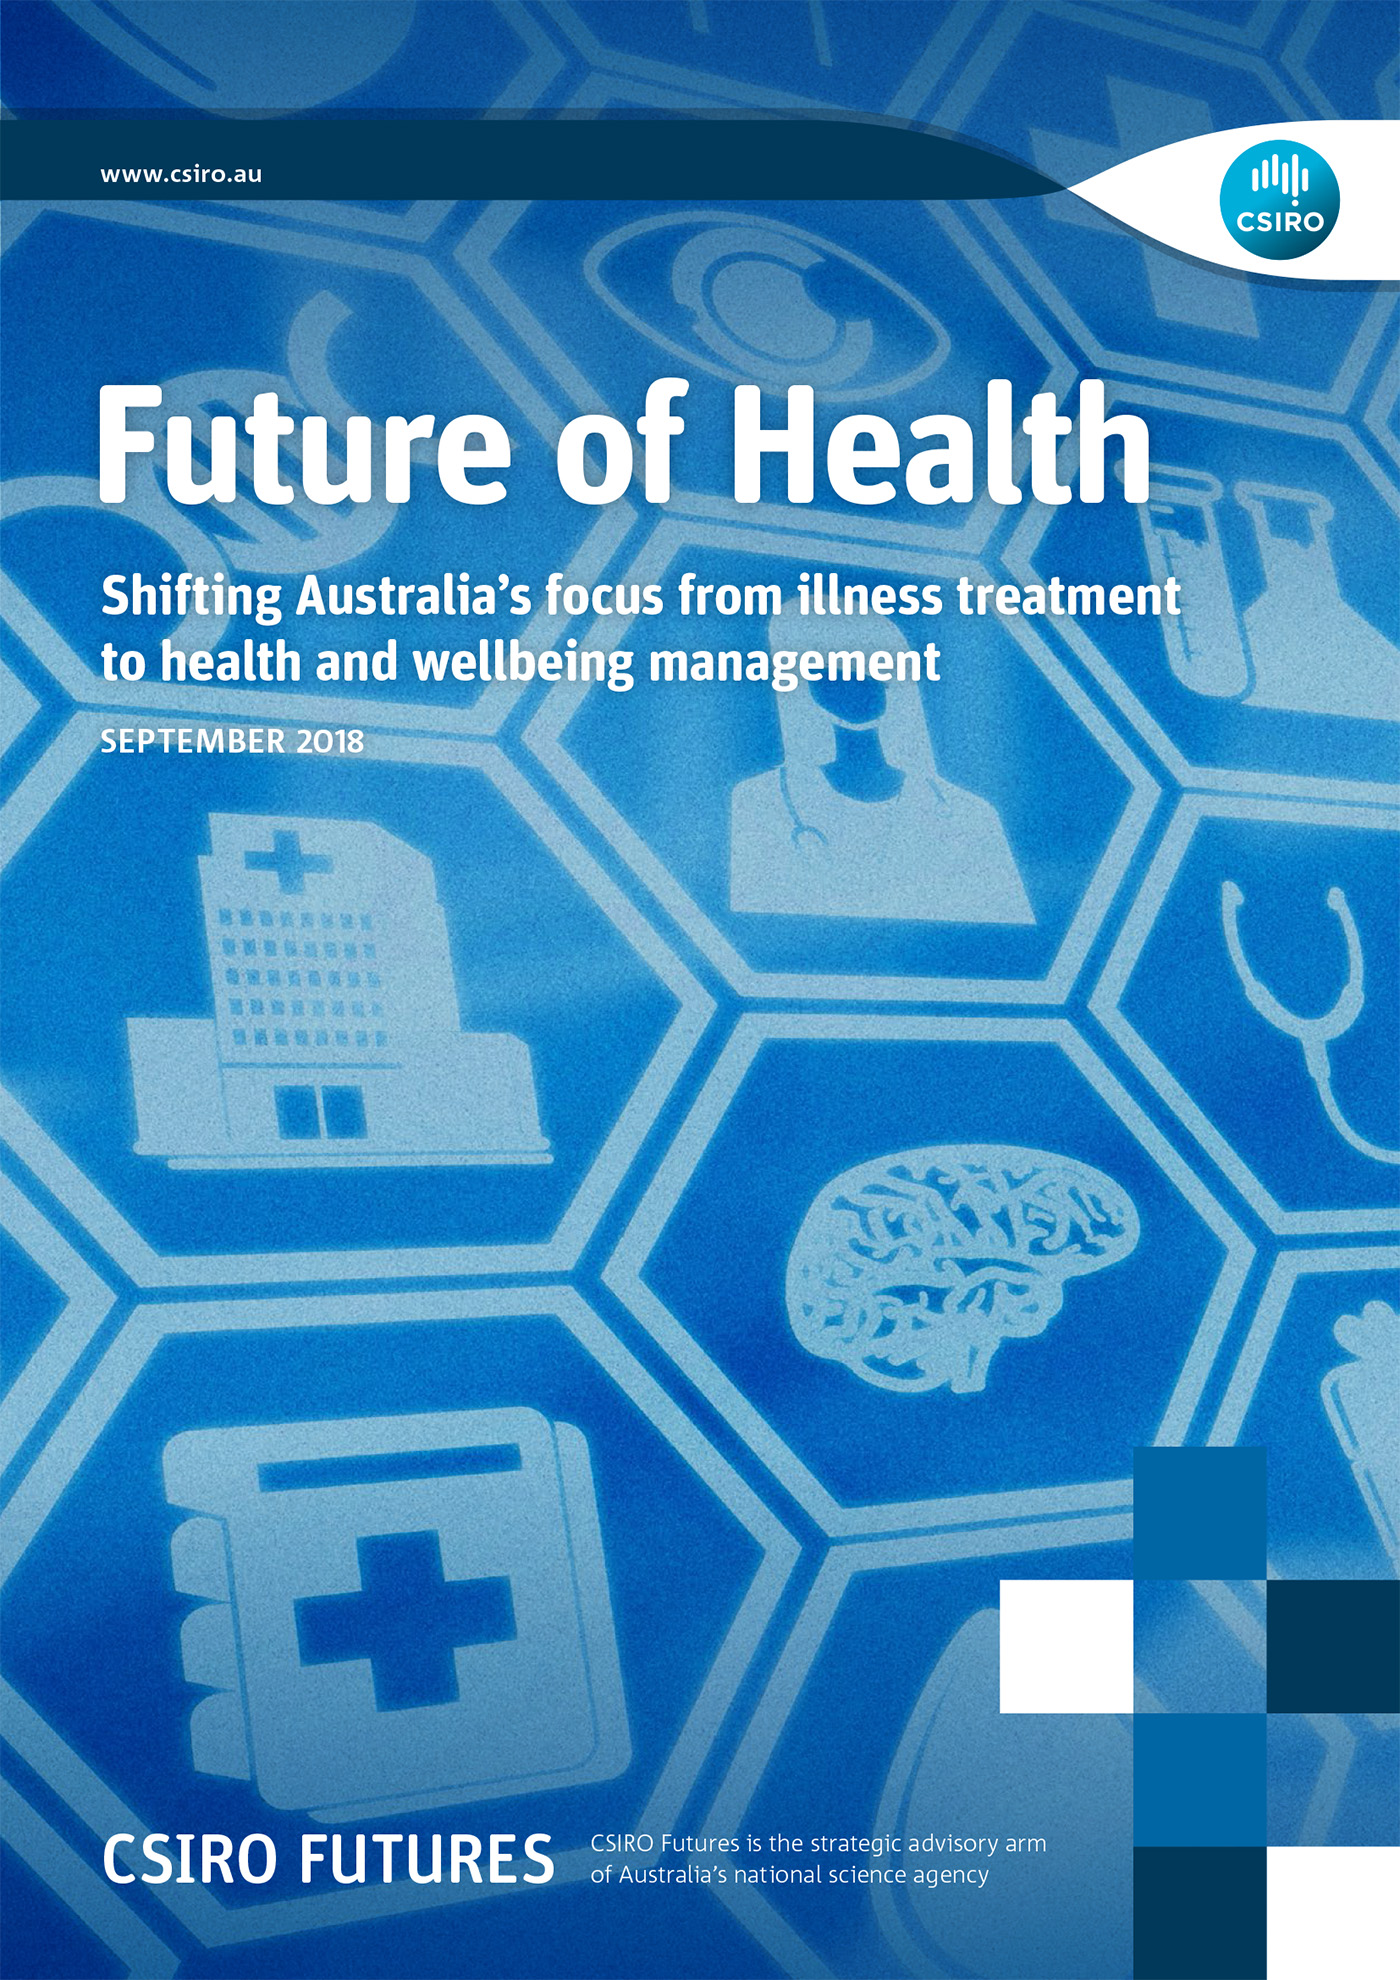 Front cover of the CSIRO Future of Health report.